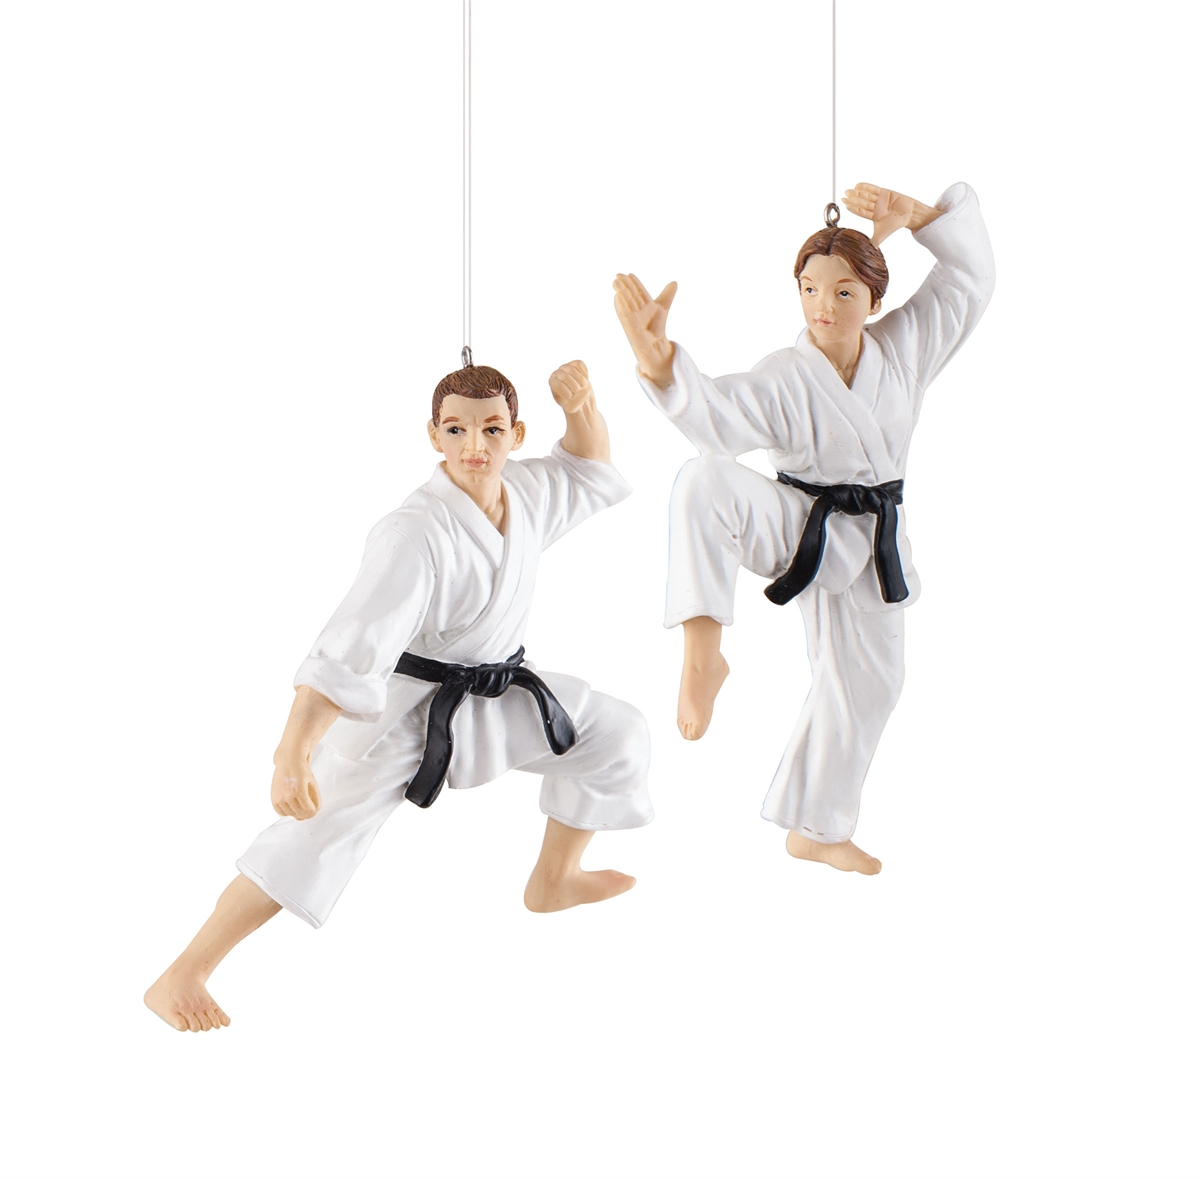 Karate ornament - Karate Class Ornament A 2